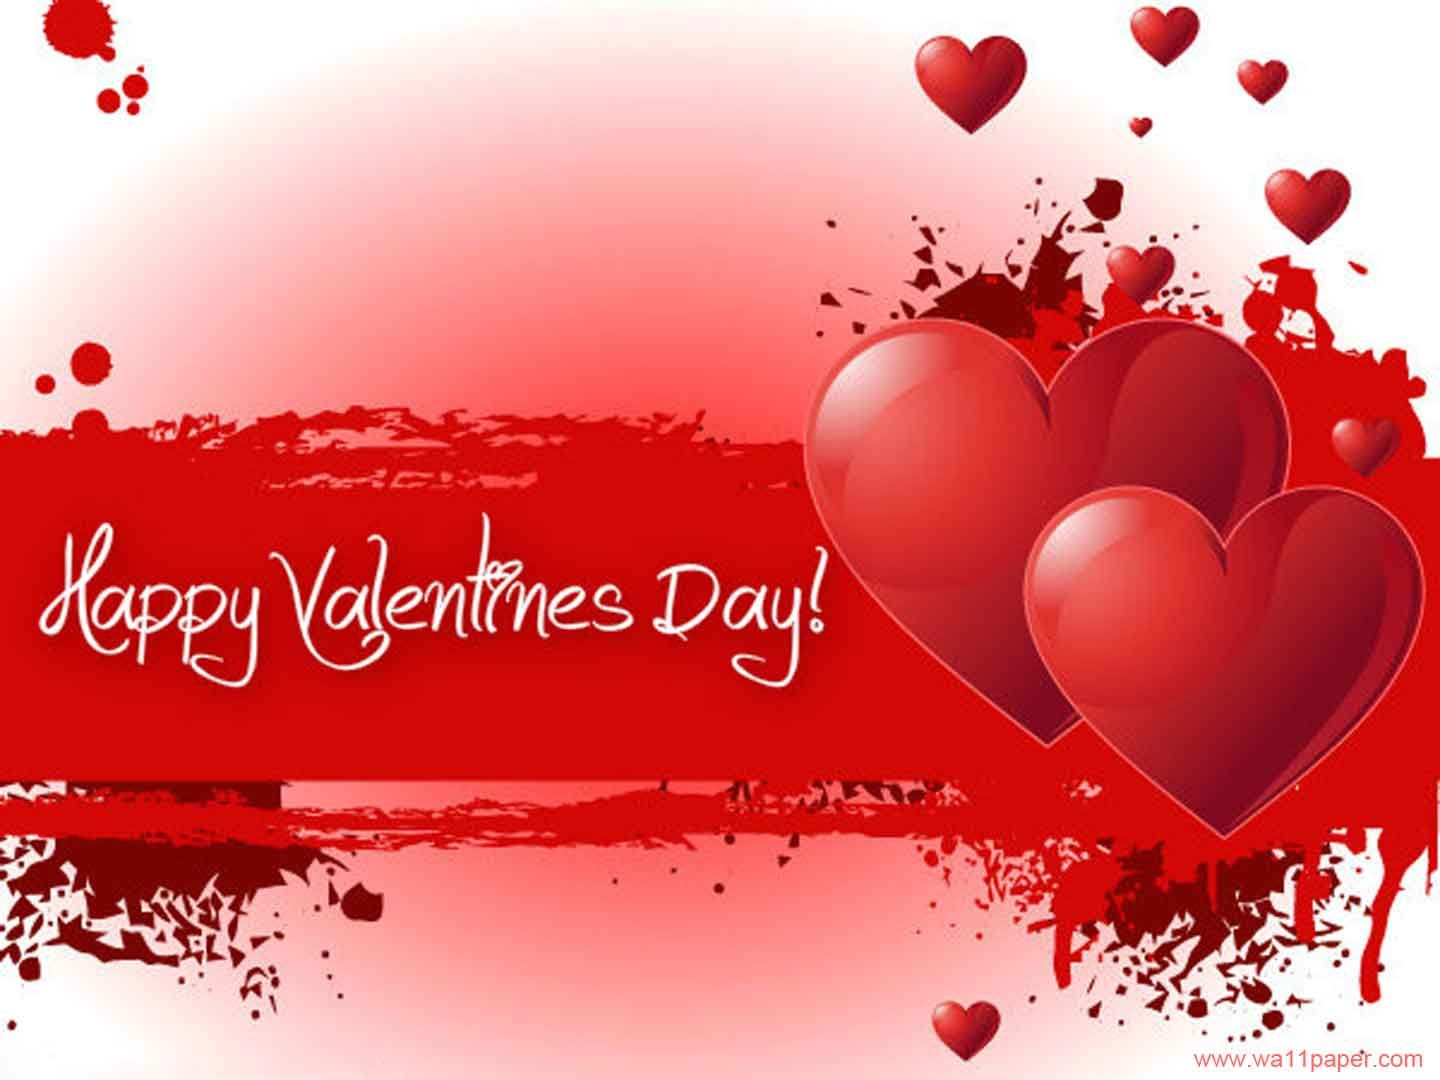 red valentines day greetings cards for facebook hd wallpaper